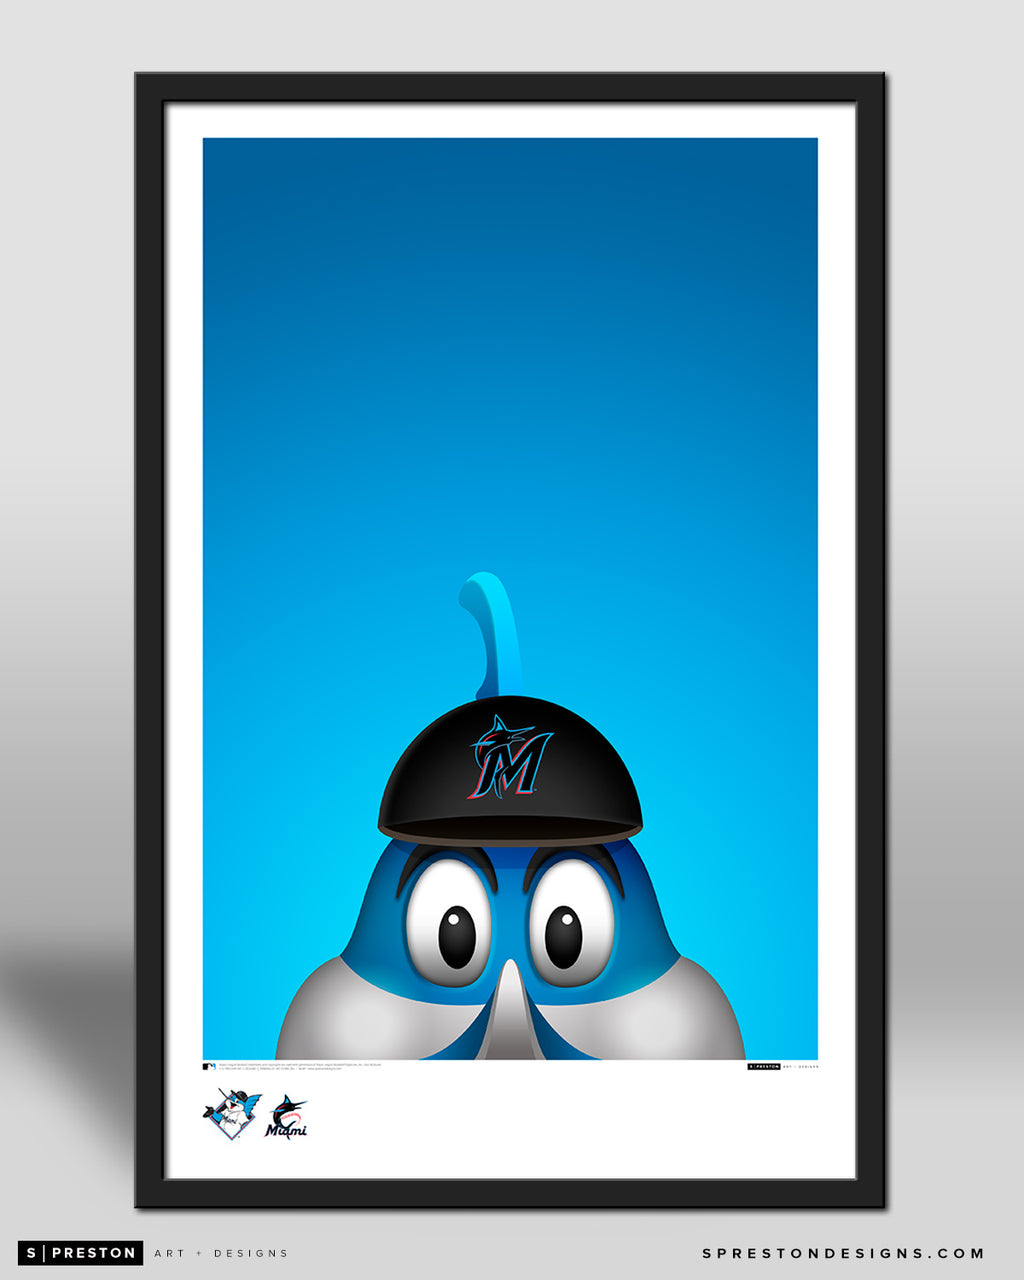 Minimalist Billy The Marlin Poster Print Miami Marlins - S Preston